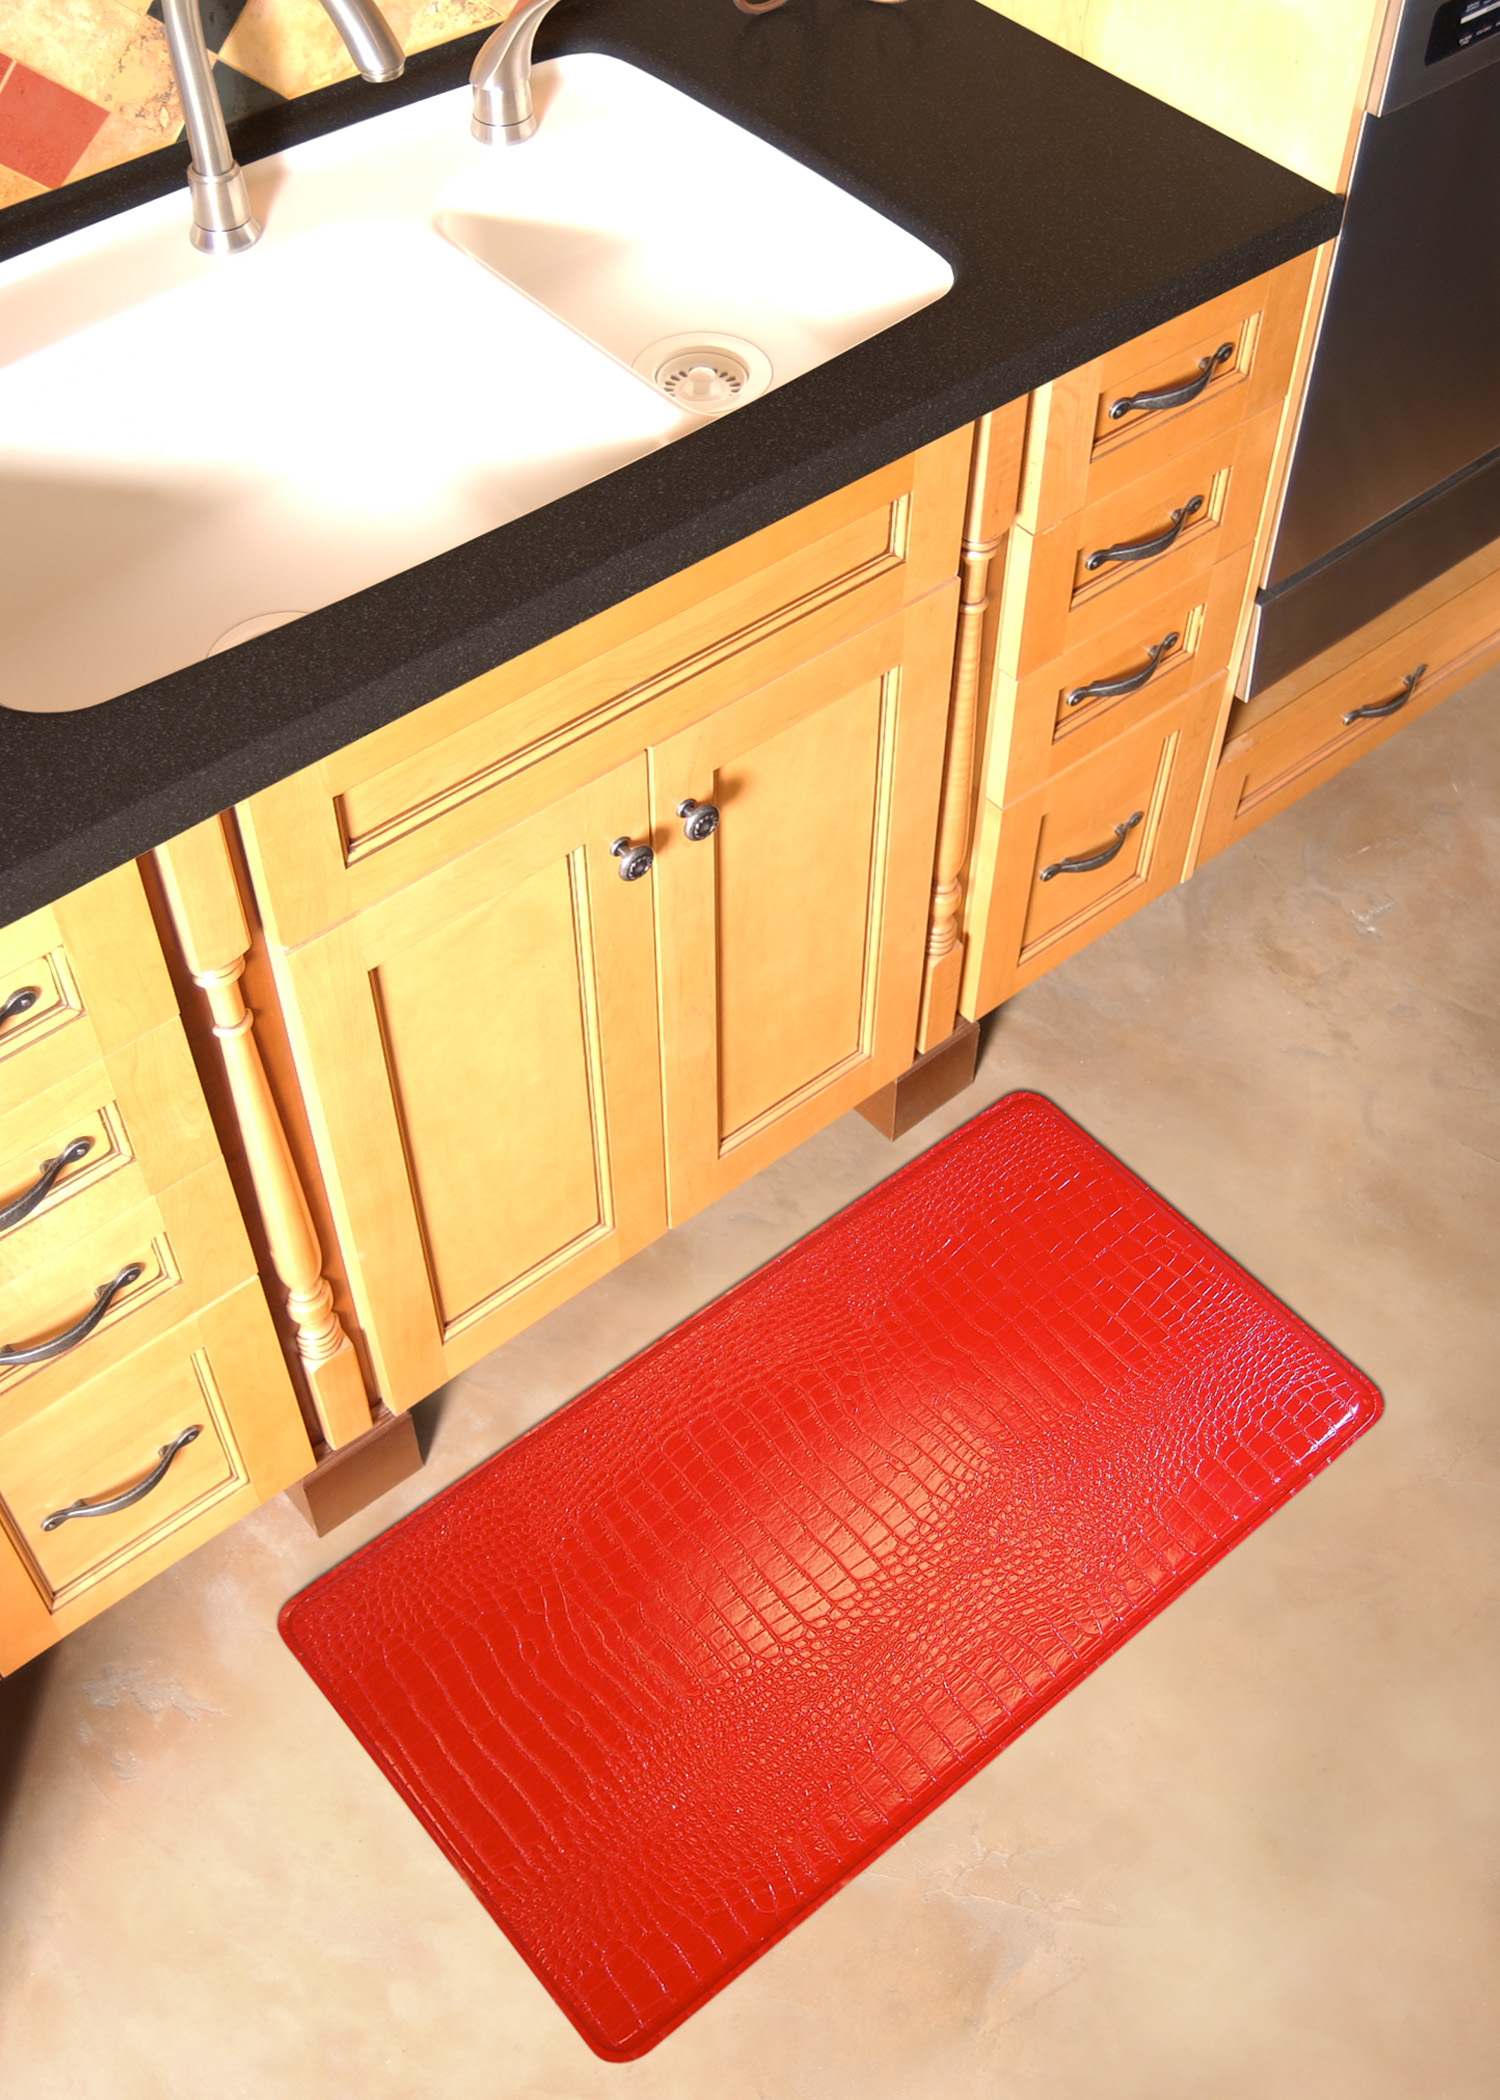 Kitchen Gel Floor Mats Gelpro Gel Filled Anti Fatigue Floor Mats Hilary